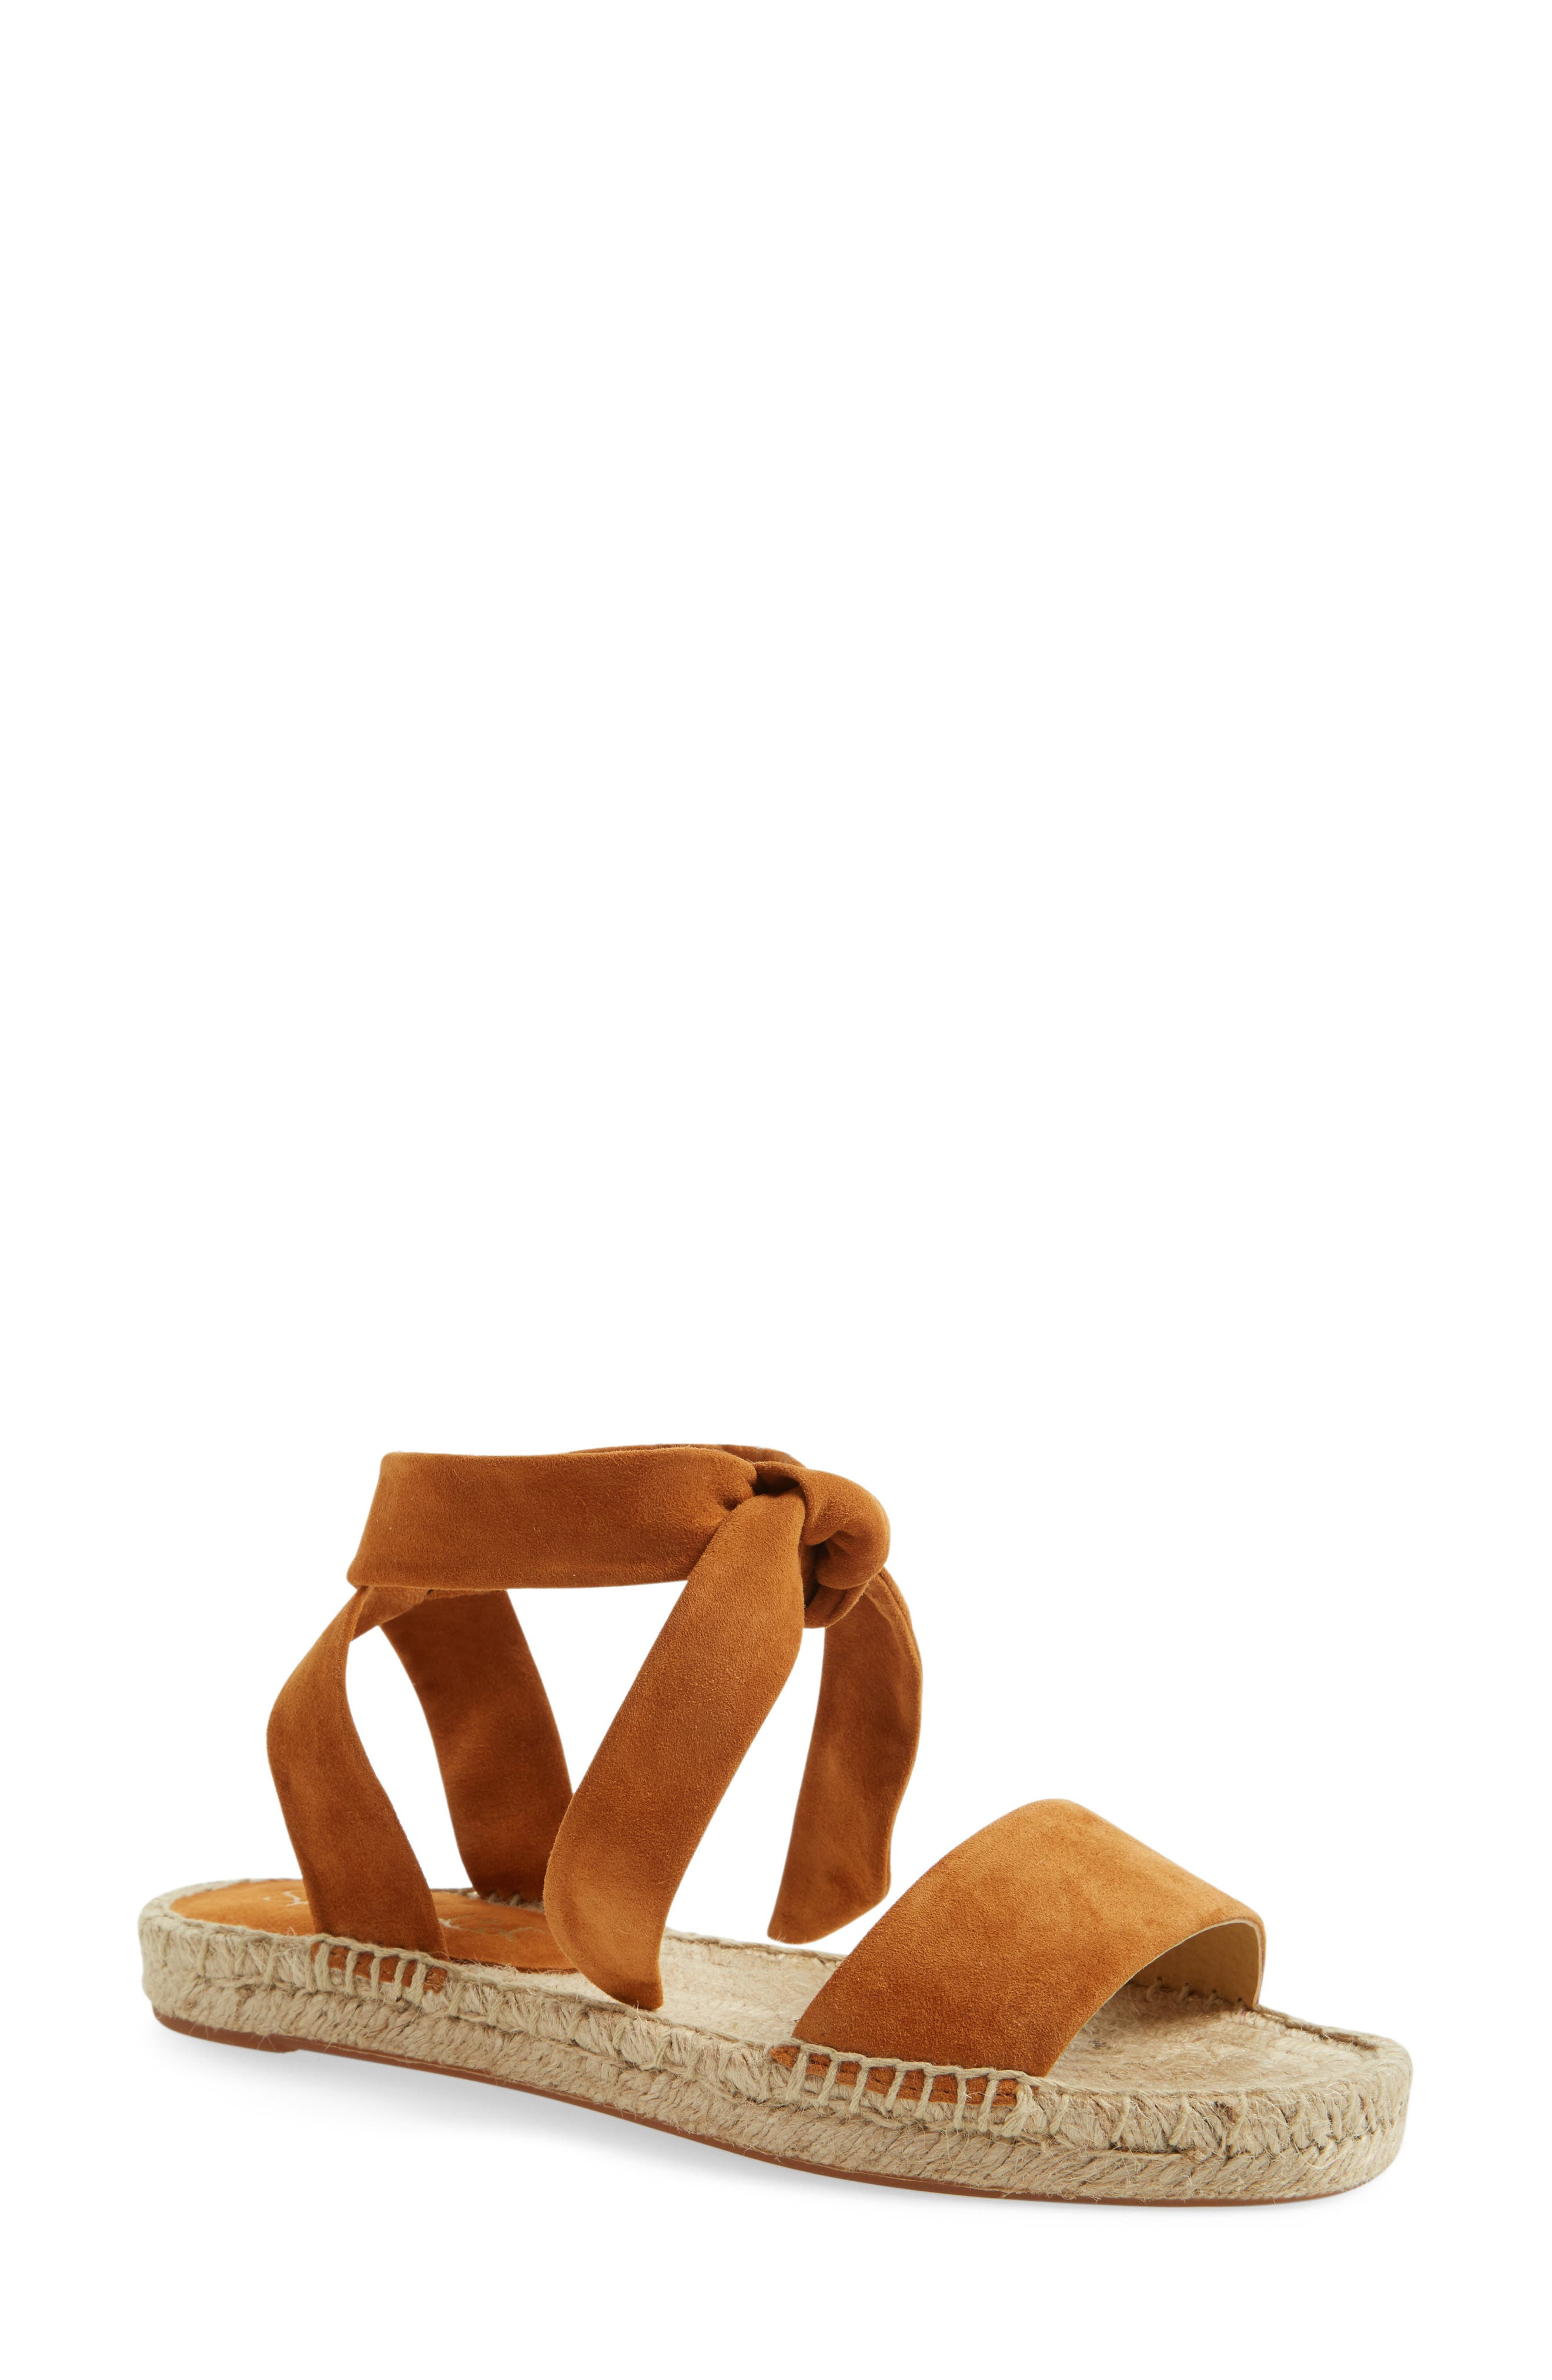 SPLENDID Jody Ankle Tie Espadrille, Main, color, 211